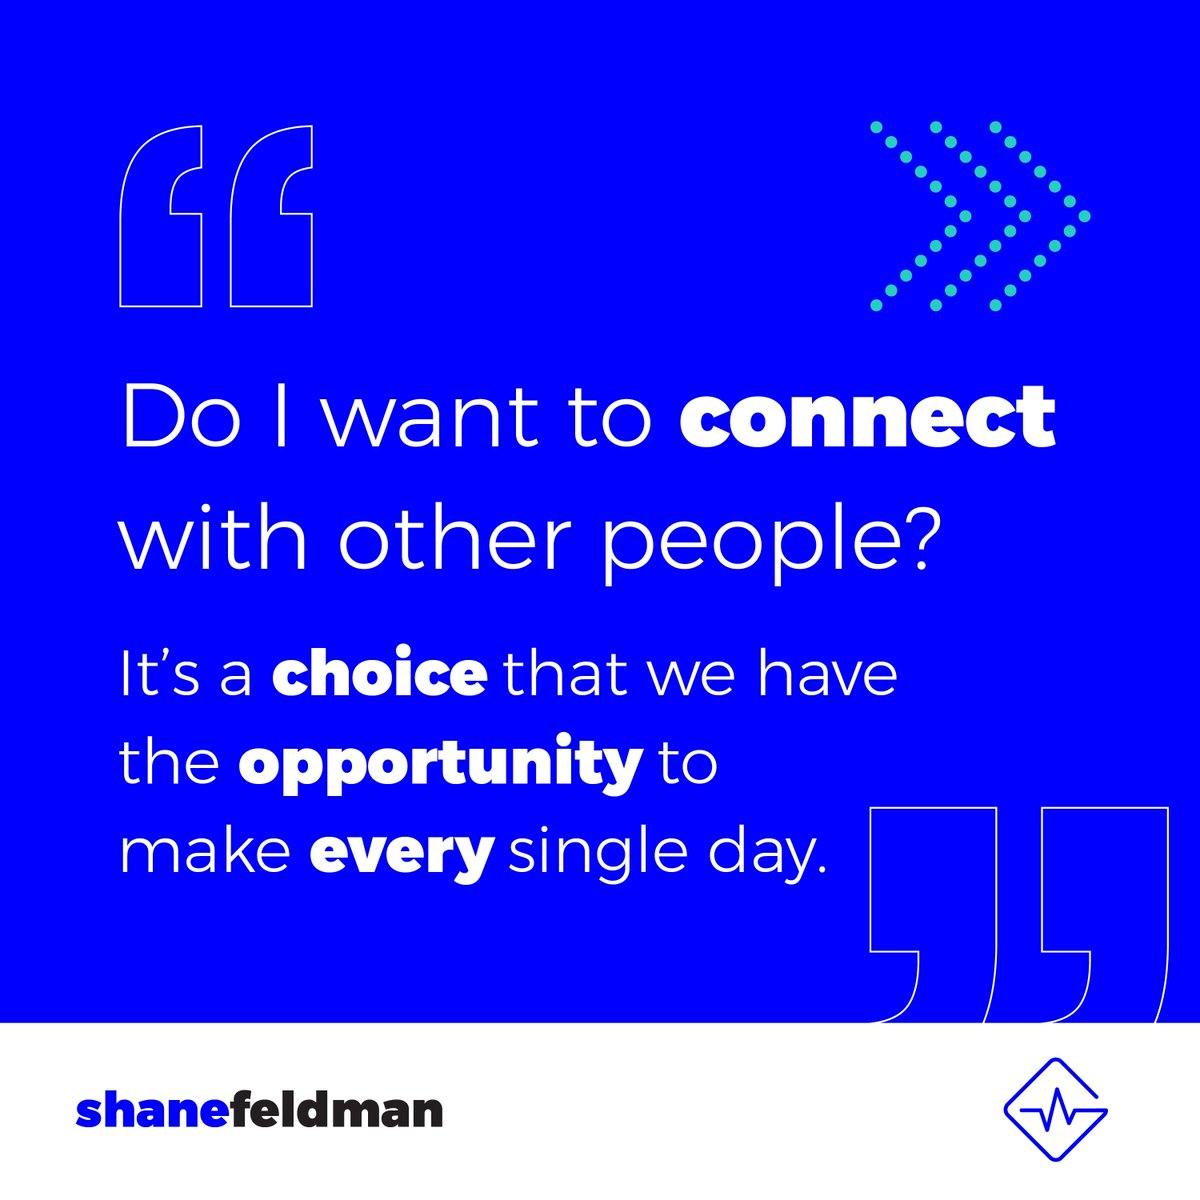 0c9f62c70f2 ... CEO of Count Me In @shane_feldman: https://anchor.fm/dr-greg-wells /episodes/38--Shane-Feldman-on-Count-Me-In-e418pe/a-af0ibj  …pic.twitter.com/kDFY7UP56L